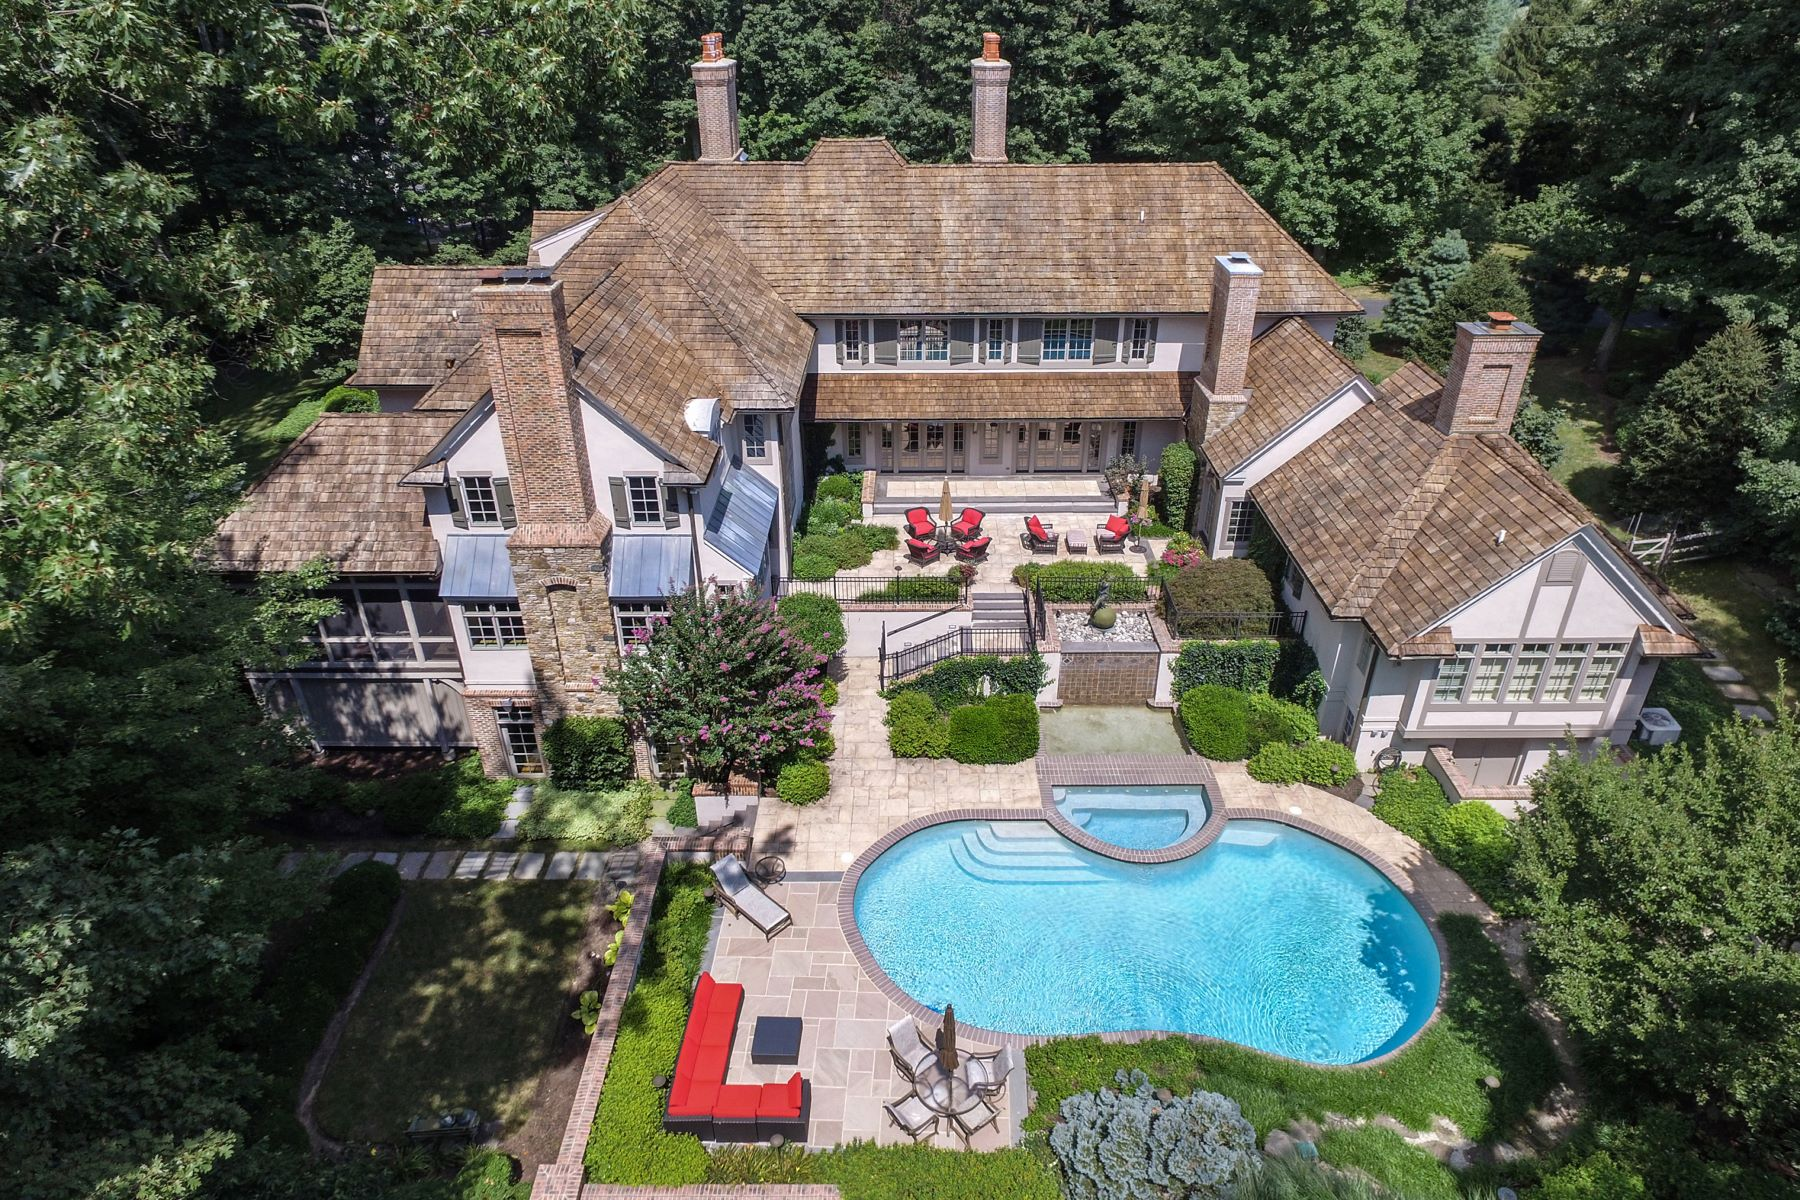 Single Family Home for Sale at 1039 Creamery Rd Newtown, Pennsylvania 18940 United States